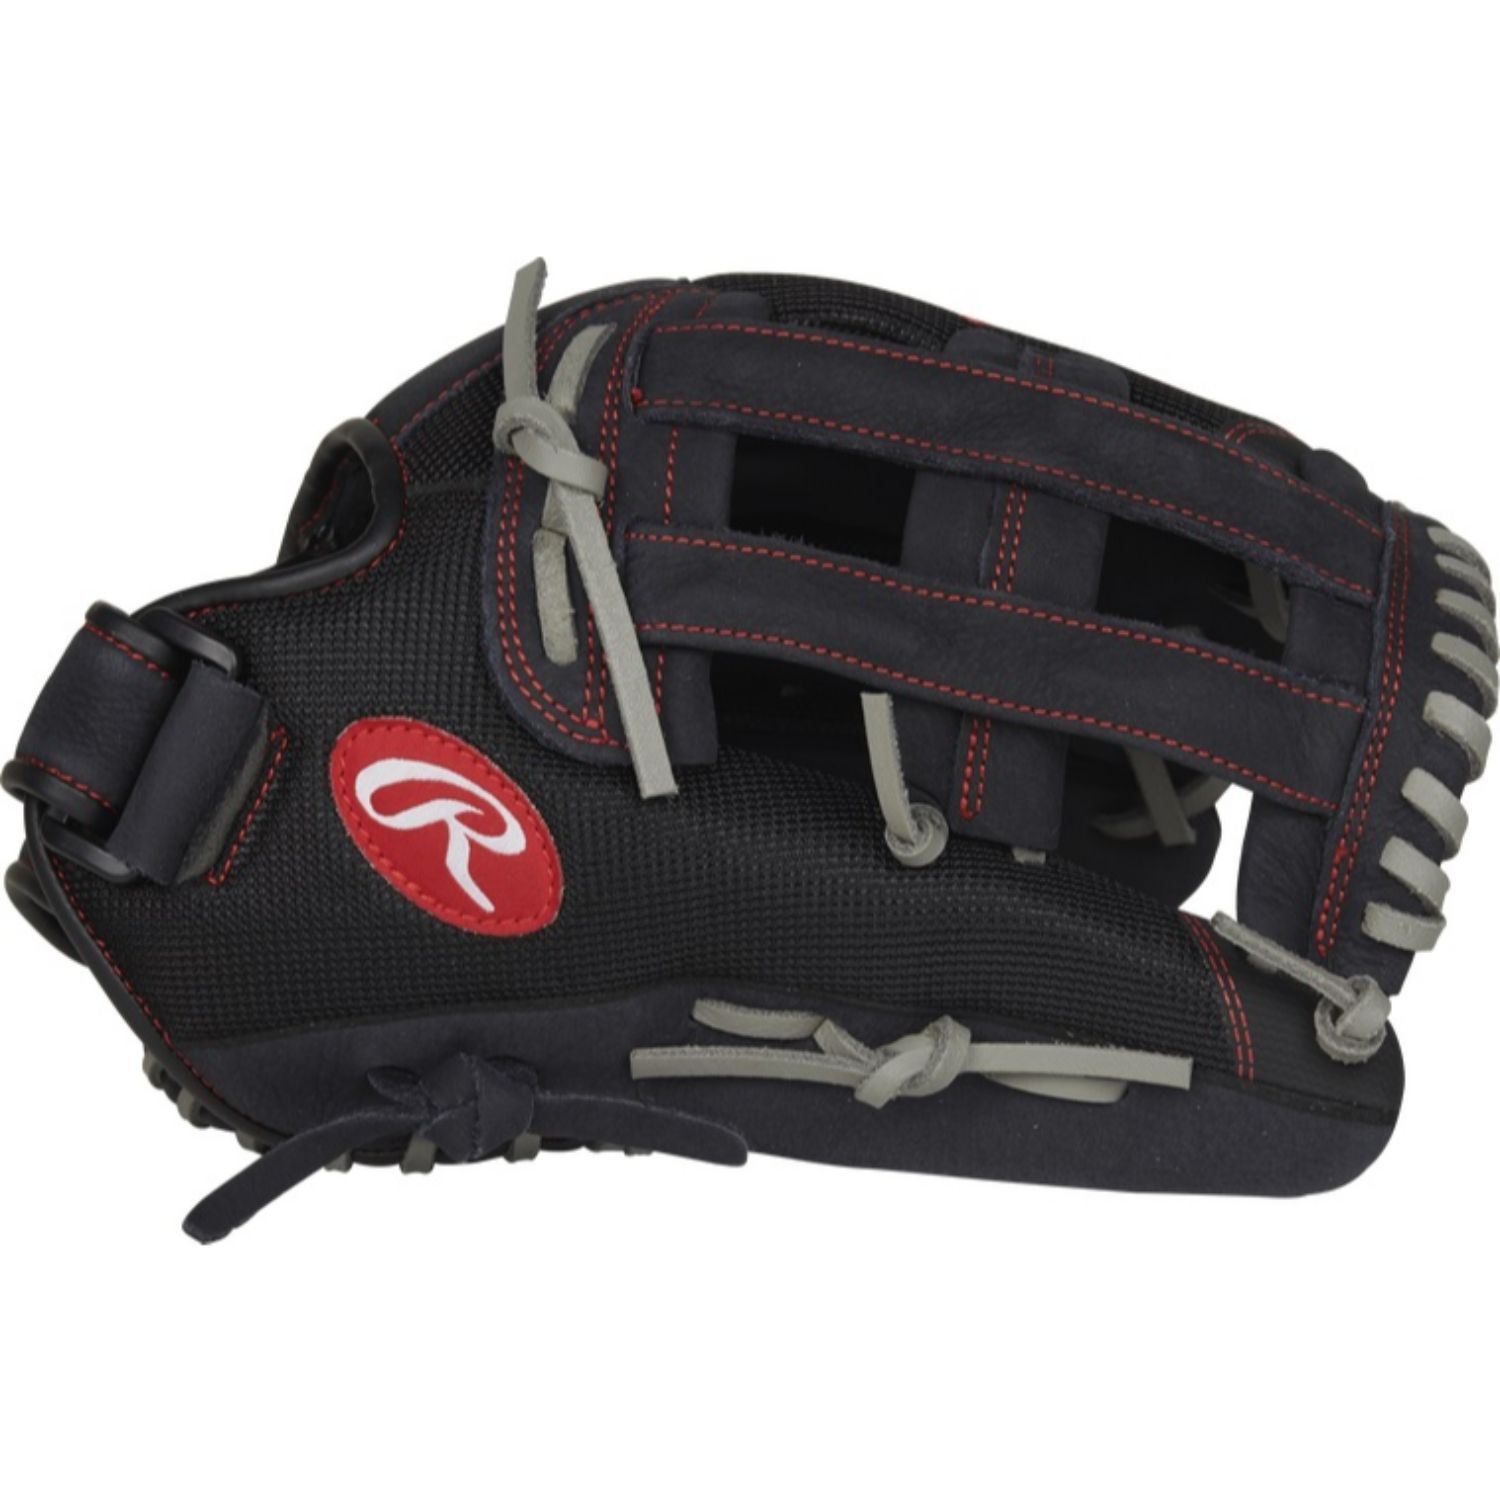 Rawlings Renegade Series 13 Inch Softball Outfield Glove RH